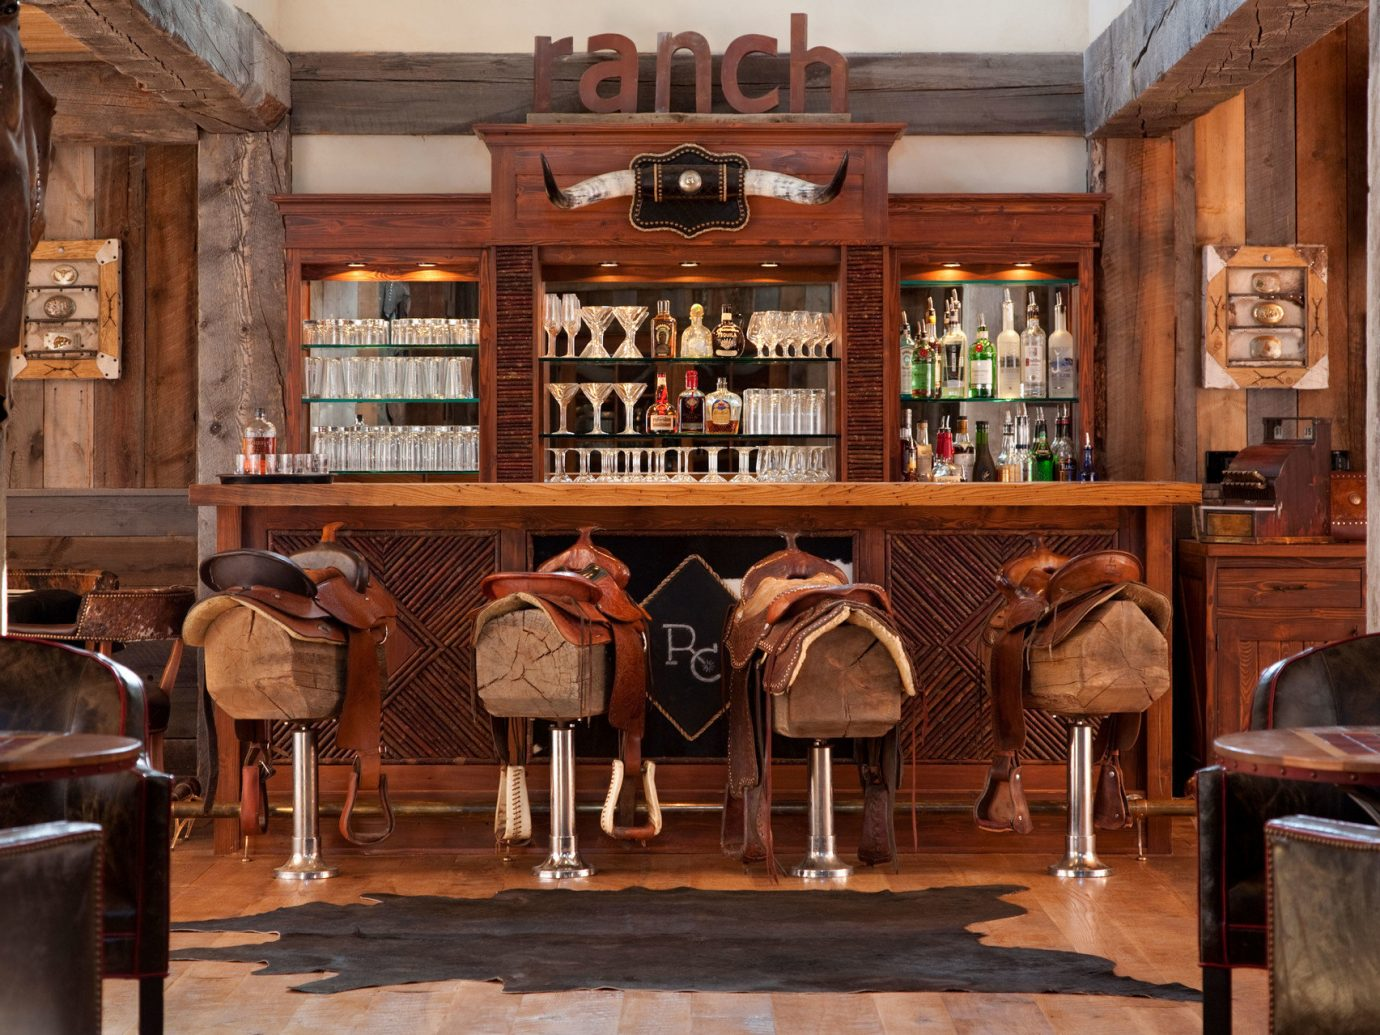 Bar bar seating cozy Drink Elegant extravagant fancy Lounge Luxury regal Rustic sophisticated Trip Ideas warm indoor floor Living building estate restaurant interior design wood home tavern ancient history tourist attraction furniture